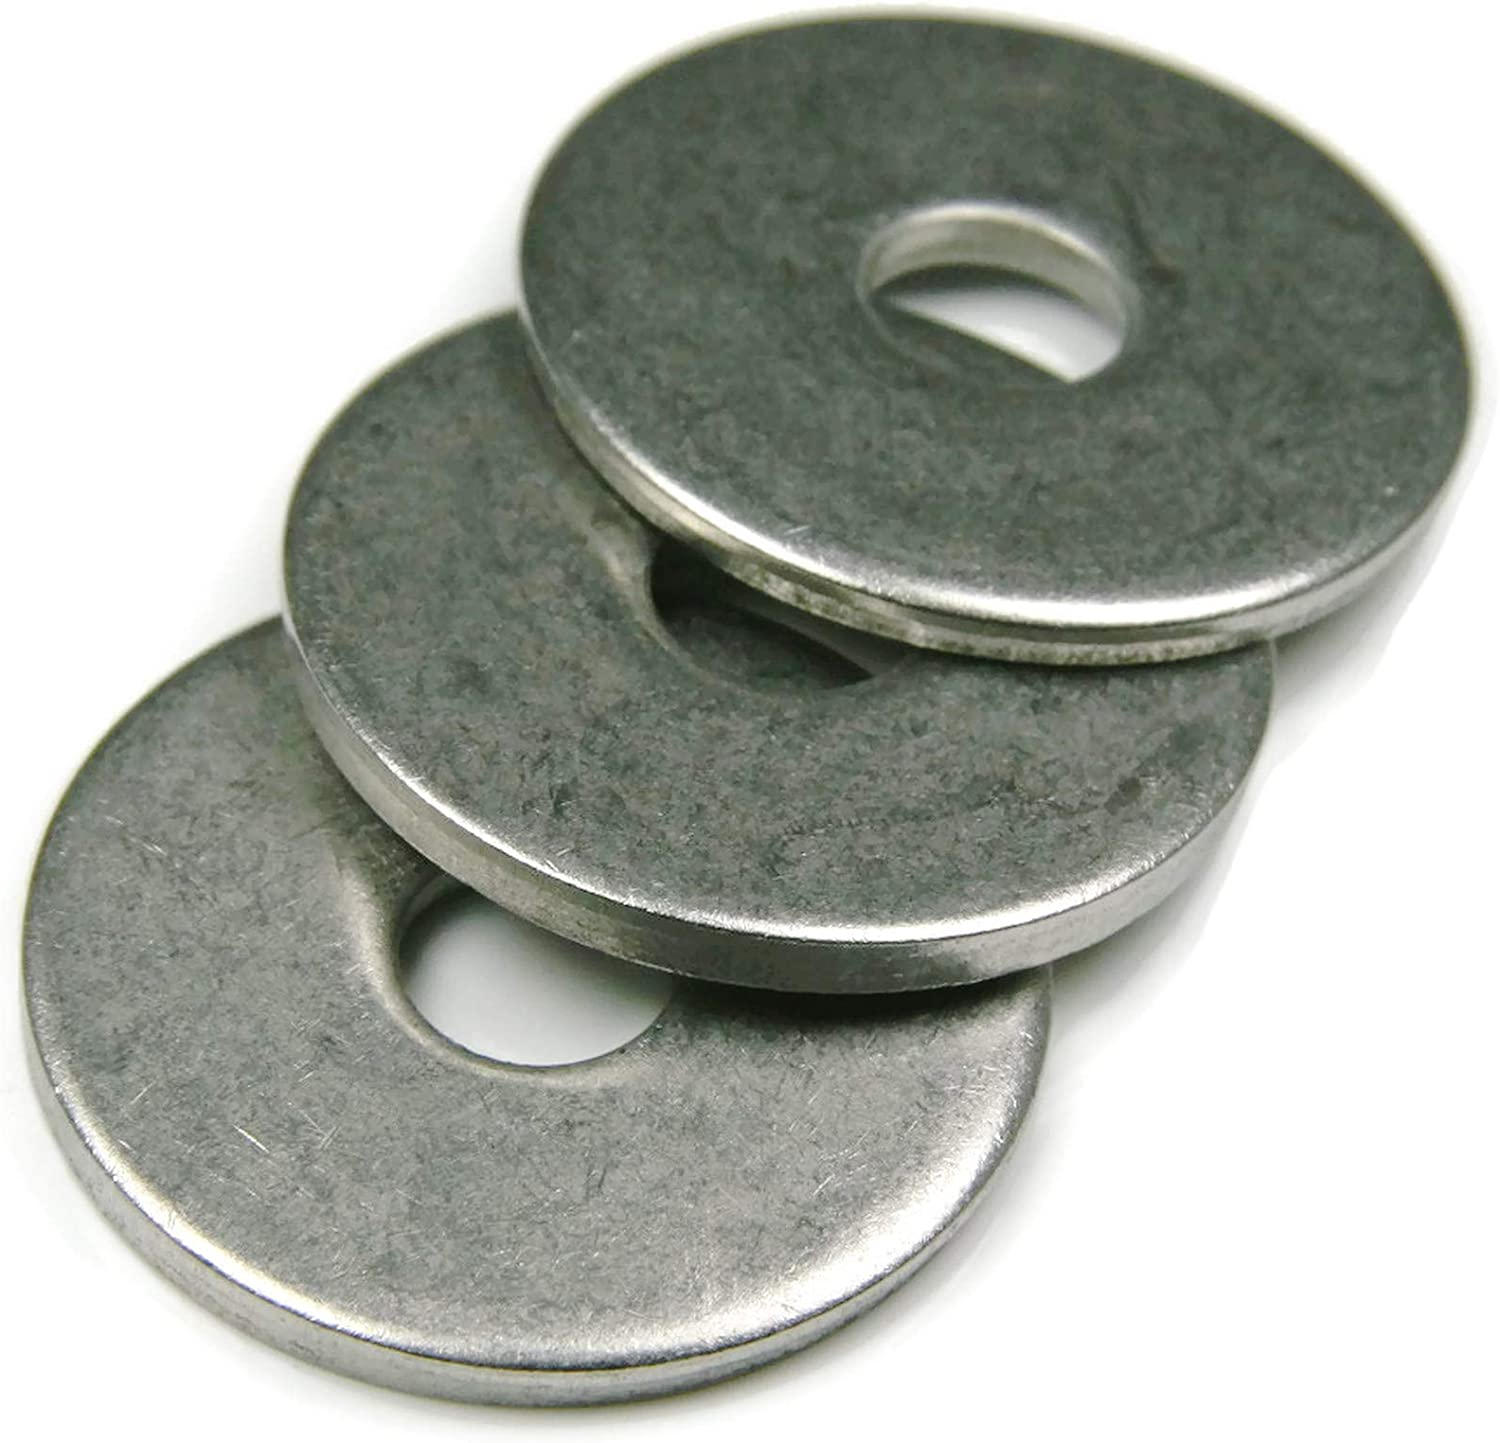 3//8 x 1-1//2 OD Pack of 25 Pieces Extra Thick Fender Washers 18-8 Stainless Steel Washers